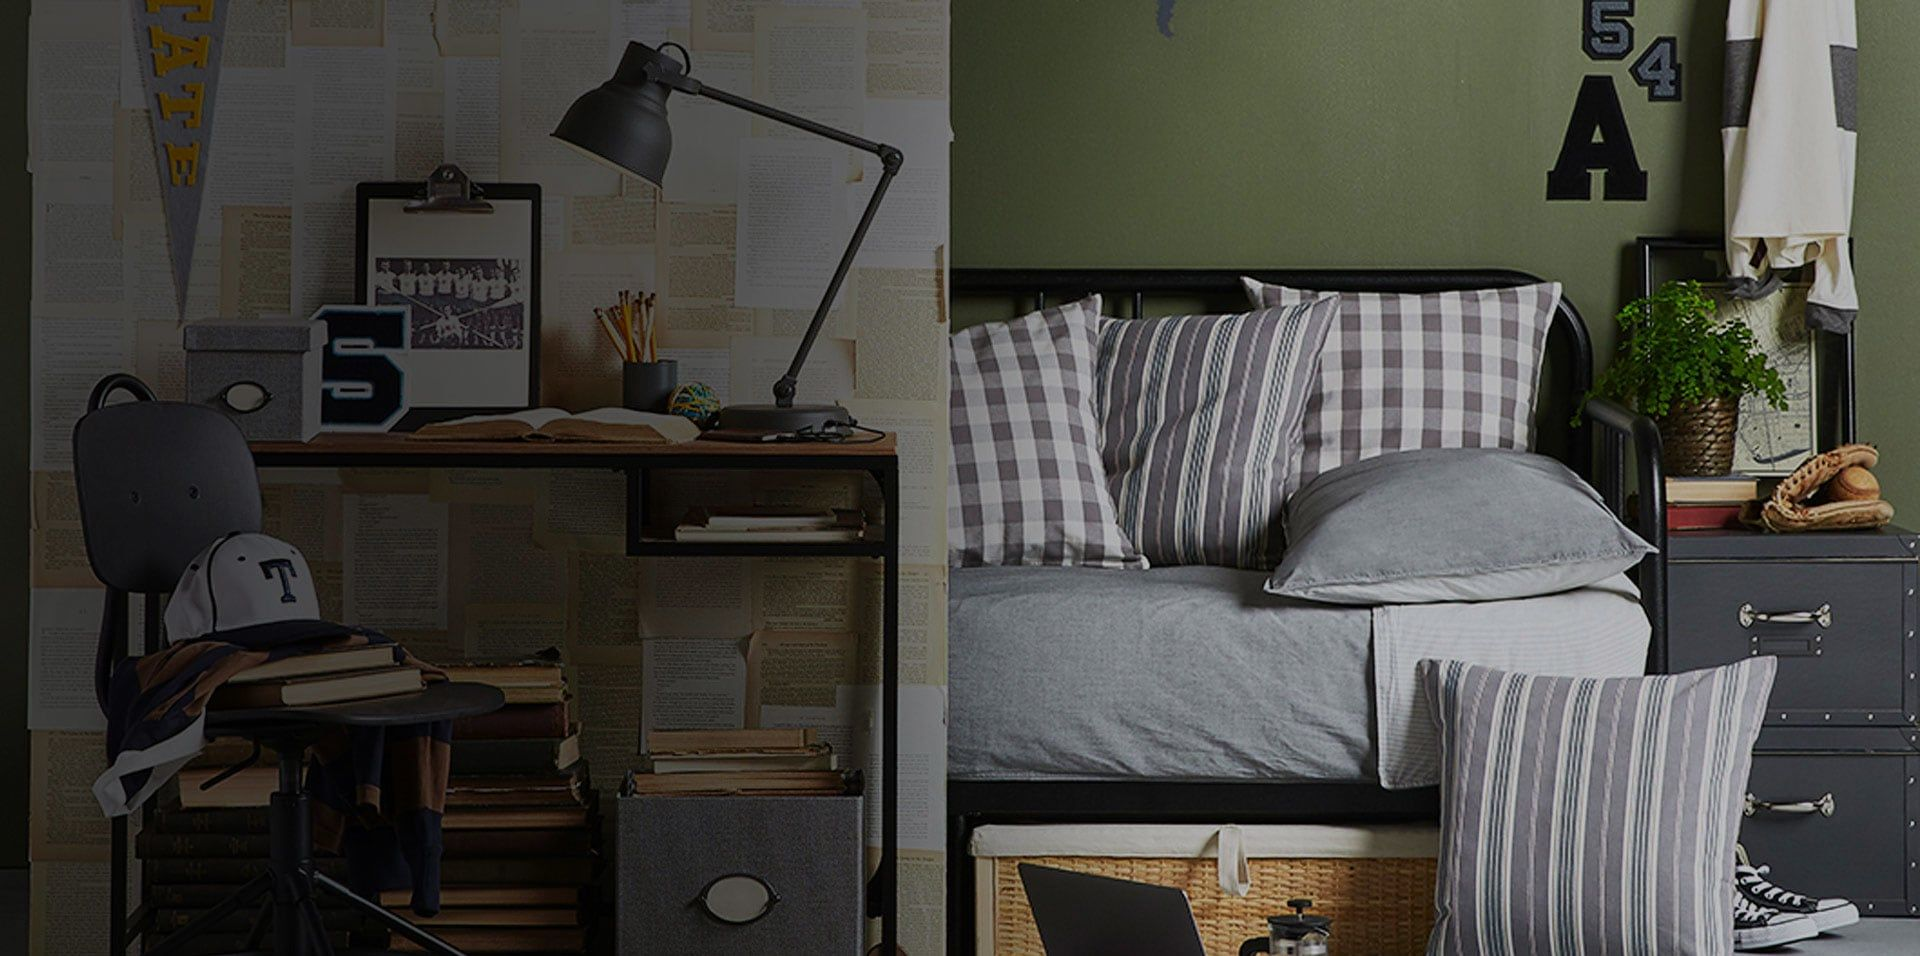 Ikea Is Excited To Help You Create The Dorm Or College Apartment